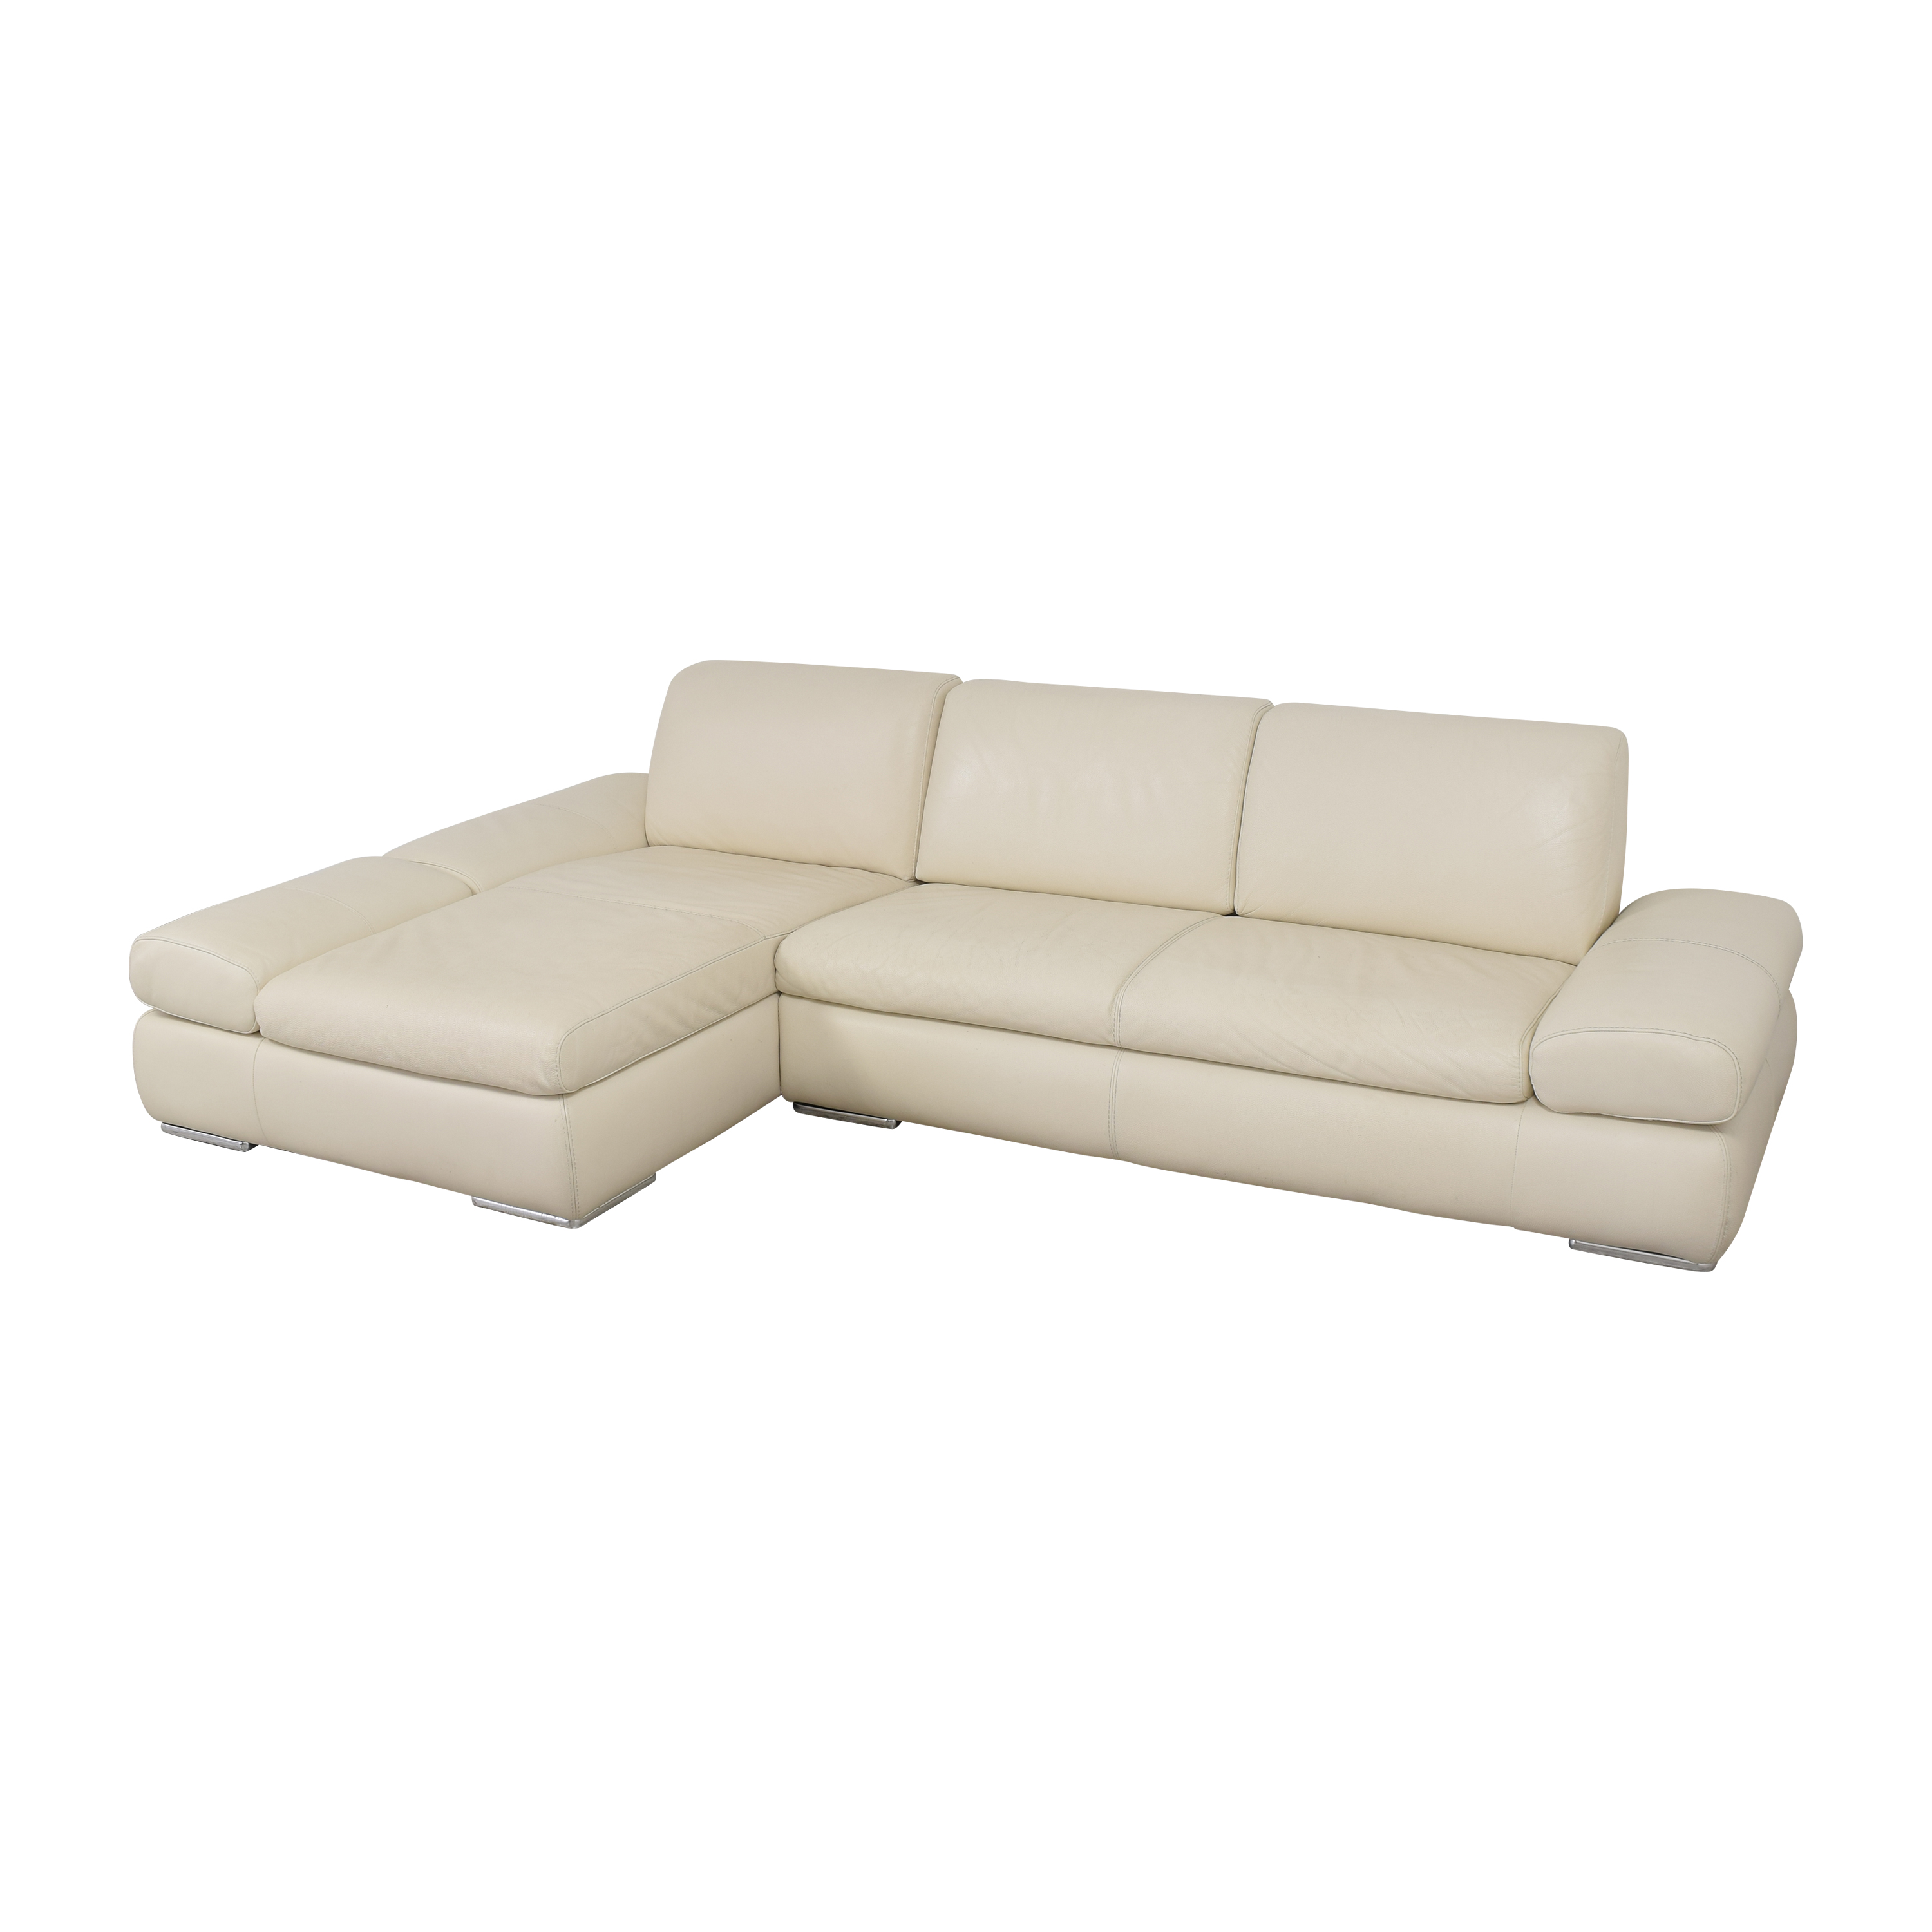 Bloomingdale's Bloomingdale's Sectional Sofa with Chaise dimensions